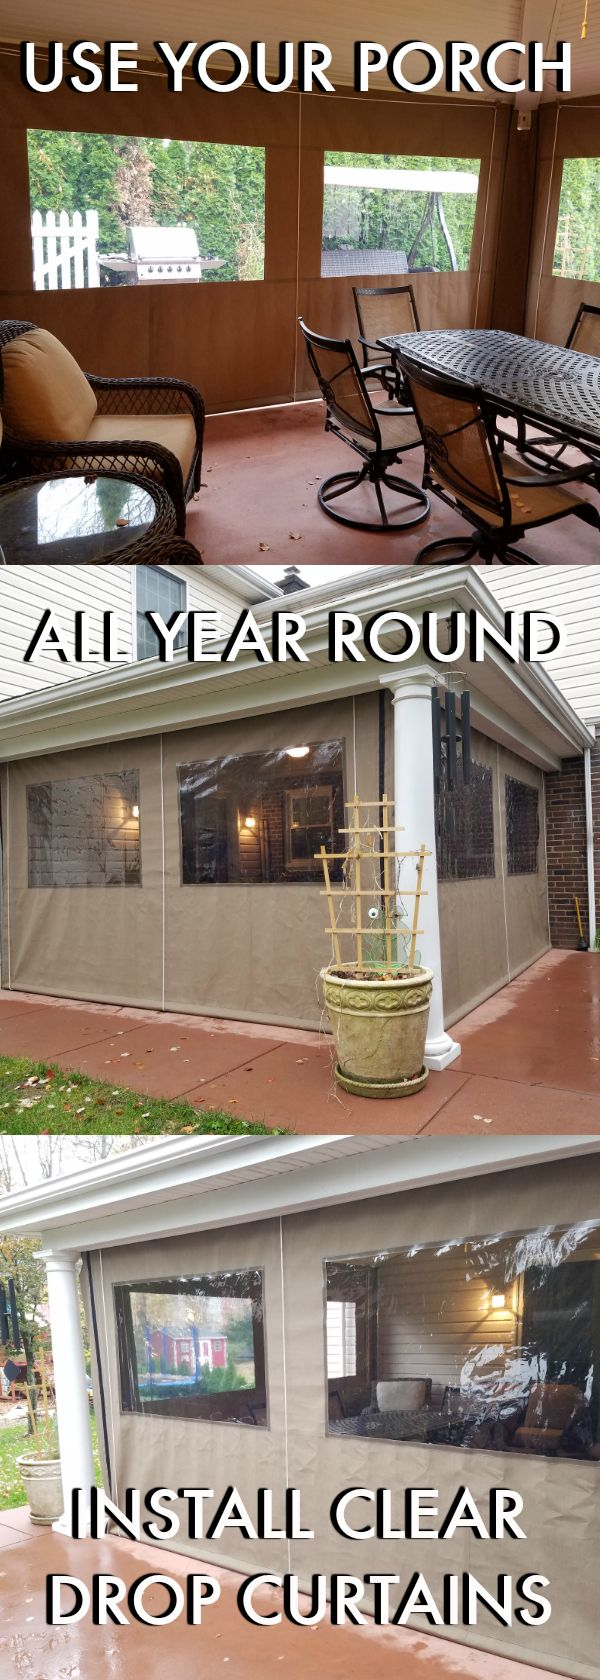 Porch enclosure curtains. DIY – WE CAN SHIP the curtains to you with all needed hardware for an easy self-install!